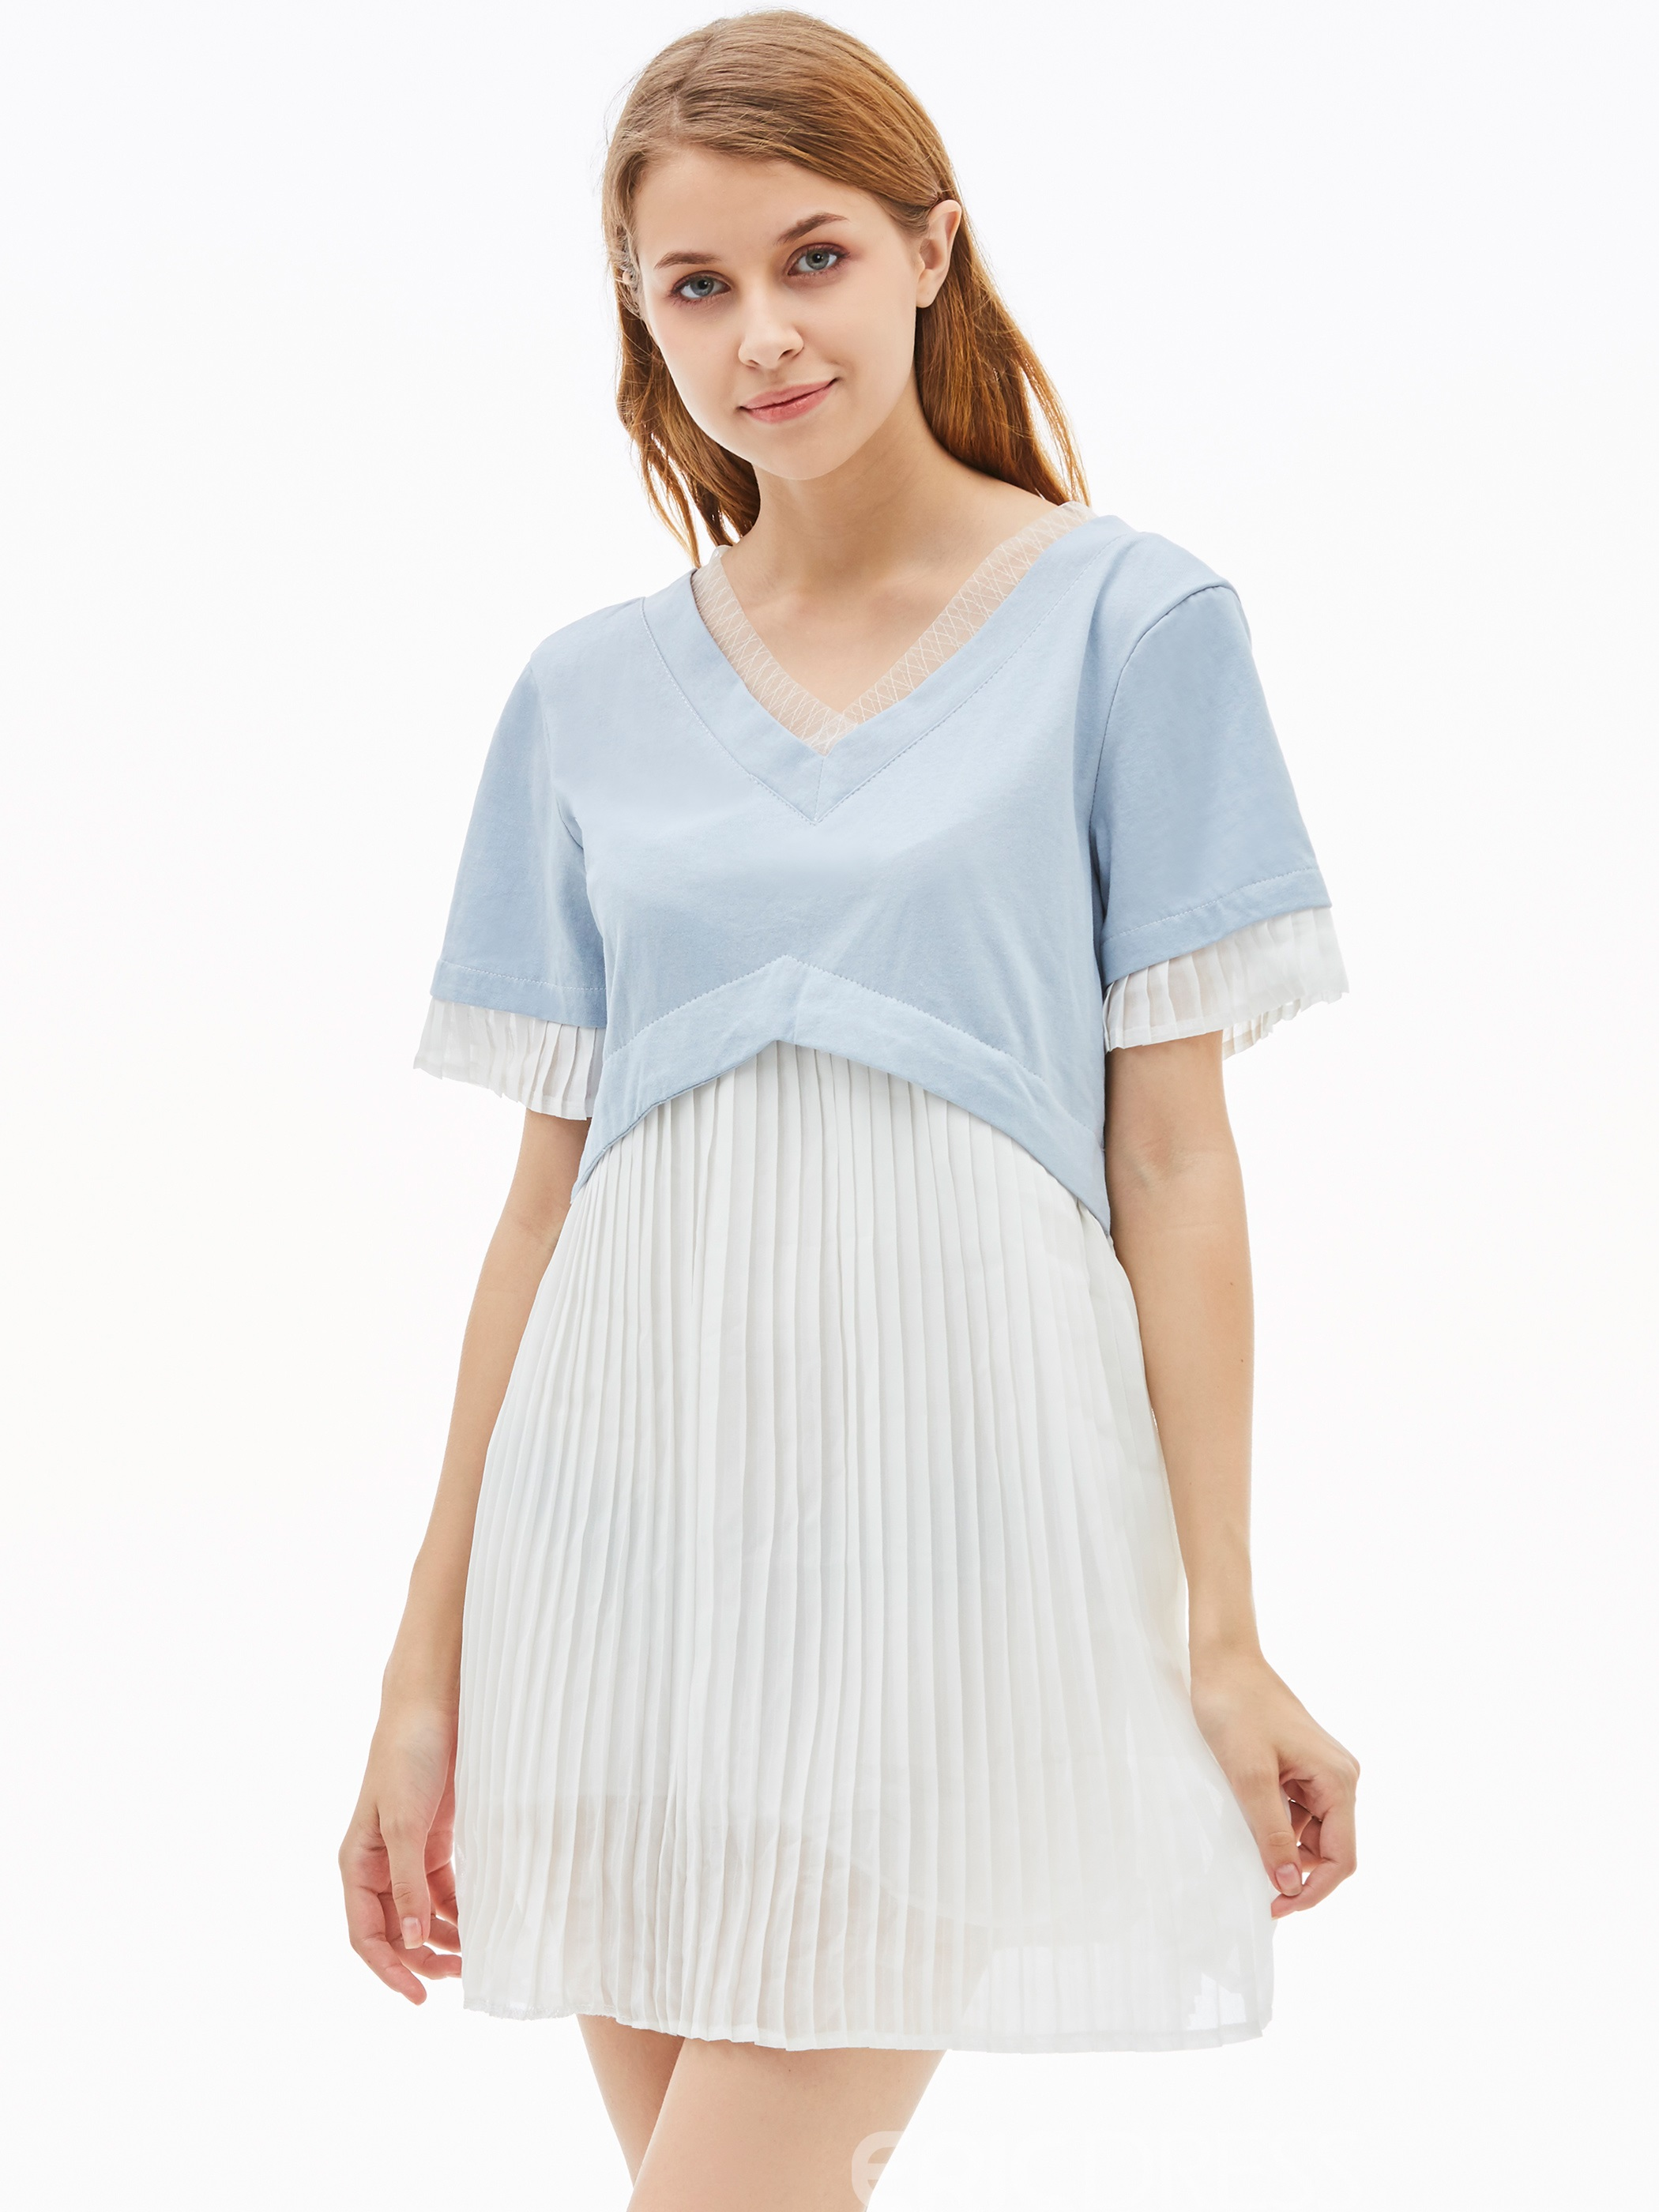 V-Neck Color Block Pleated Women's Day Dress